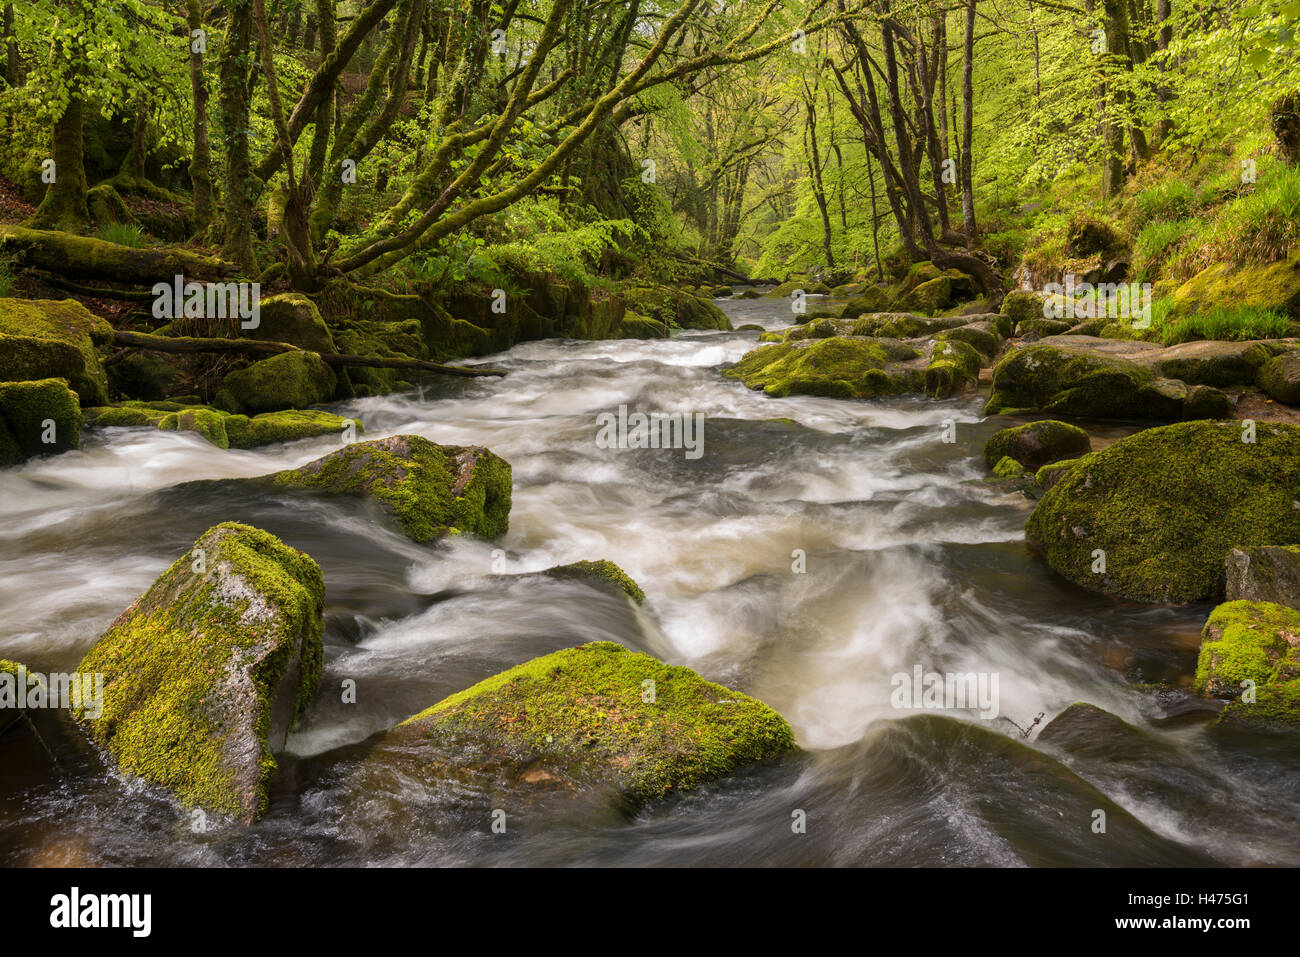 The River Fowey flowing through the moss covered woods at Golitha Falls, Cornwall, England. Spring (May) 2015. - Stock Image